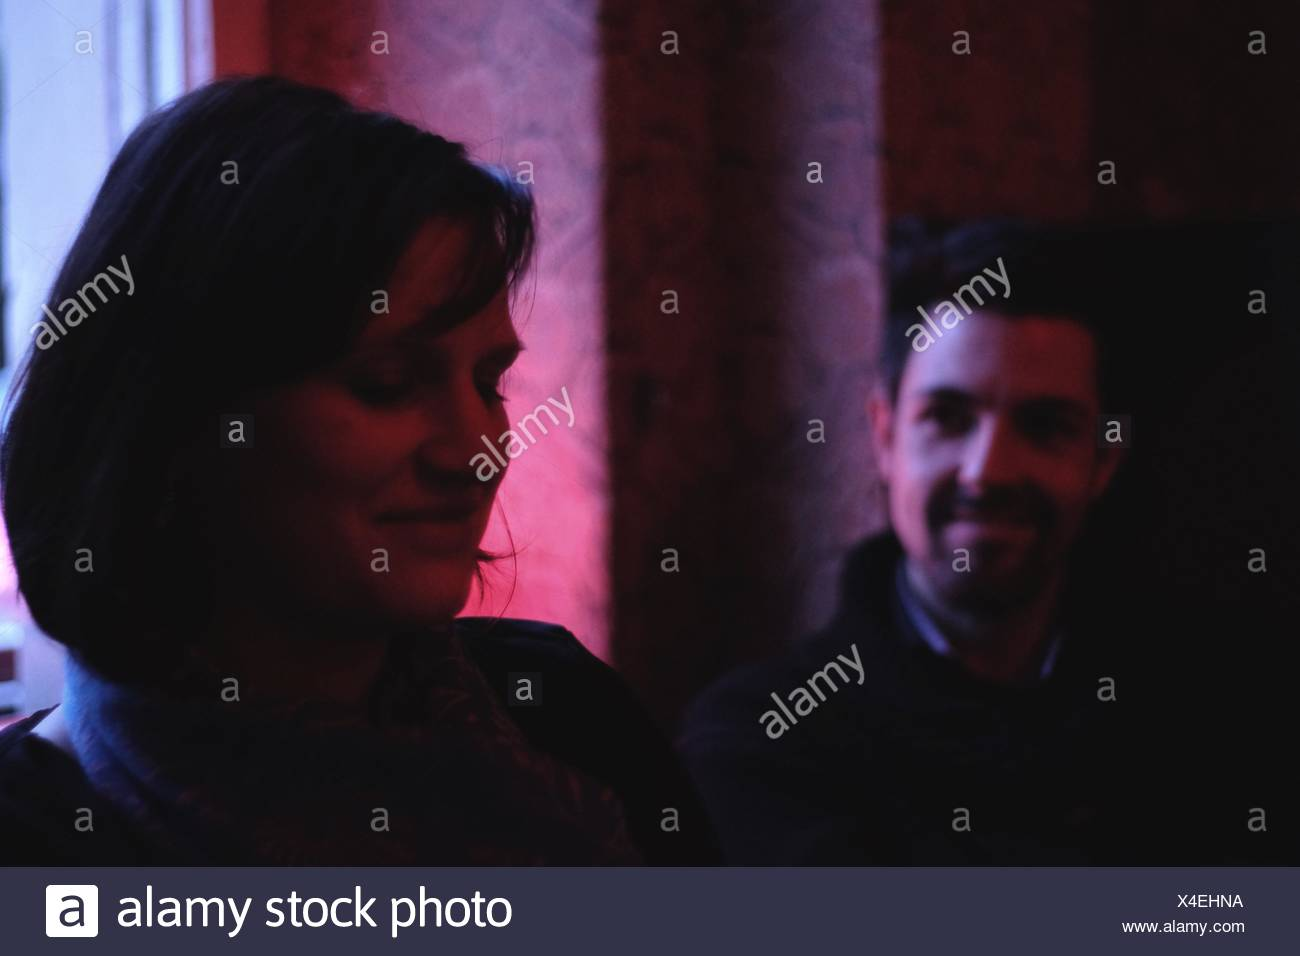 Close-Up Of Heterosexual Couple Smiling - Stock Image